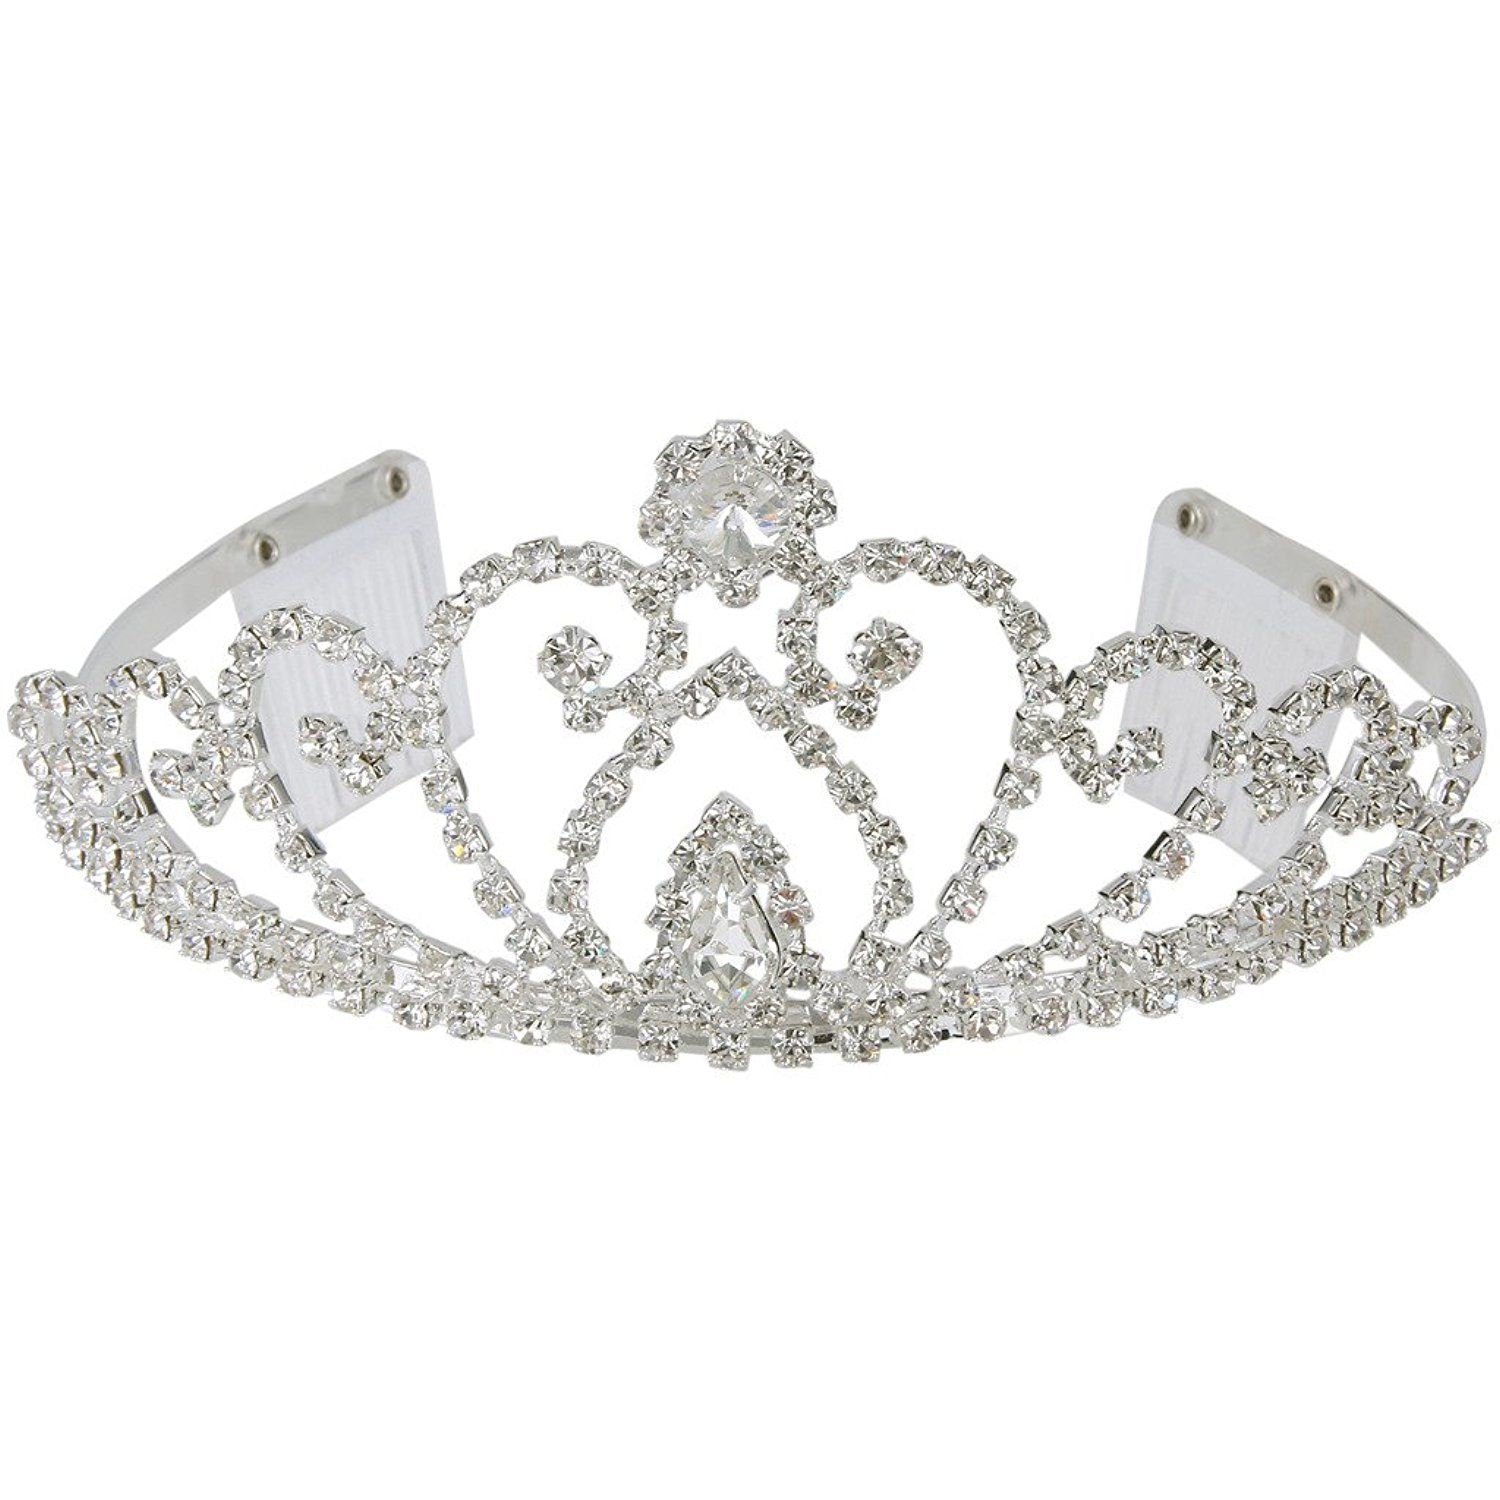 Clearine Women's Crystal Victorian Style Simulated Pearl Bling Wedding Bridal Crown Hair Tiara Silver-Tone FRFlb